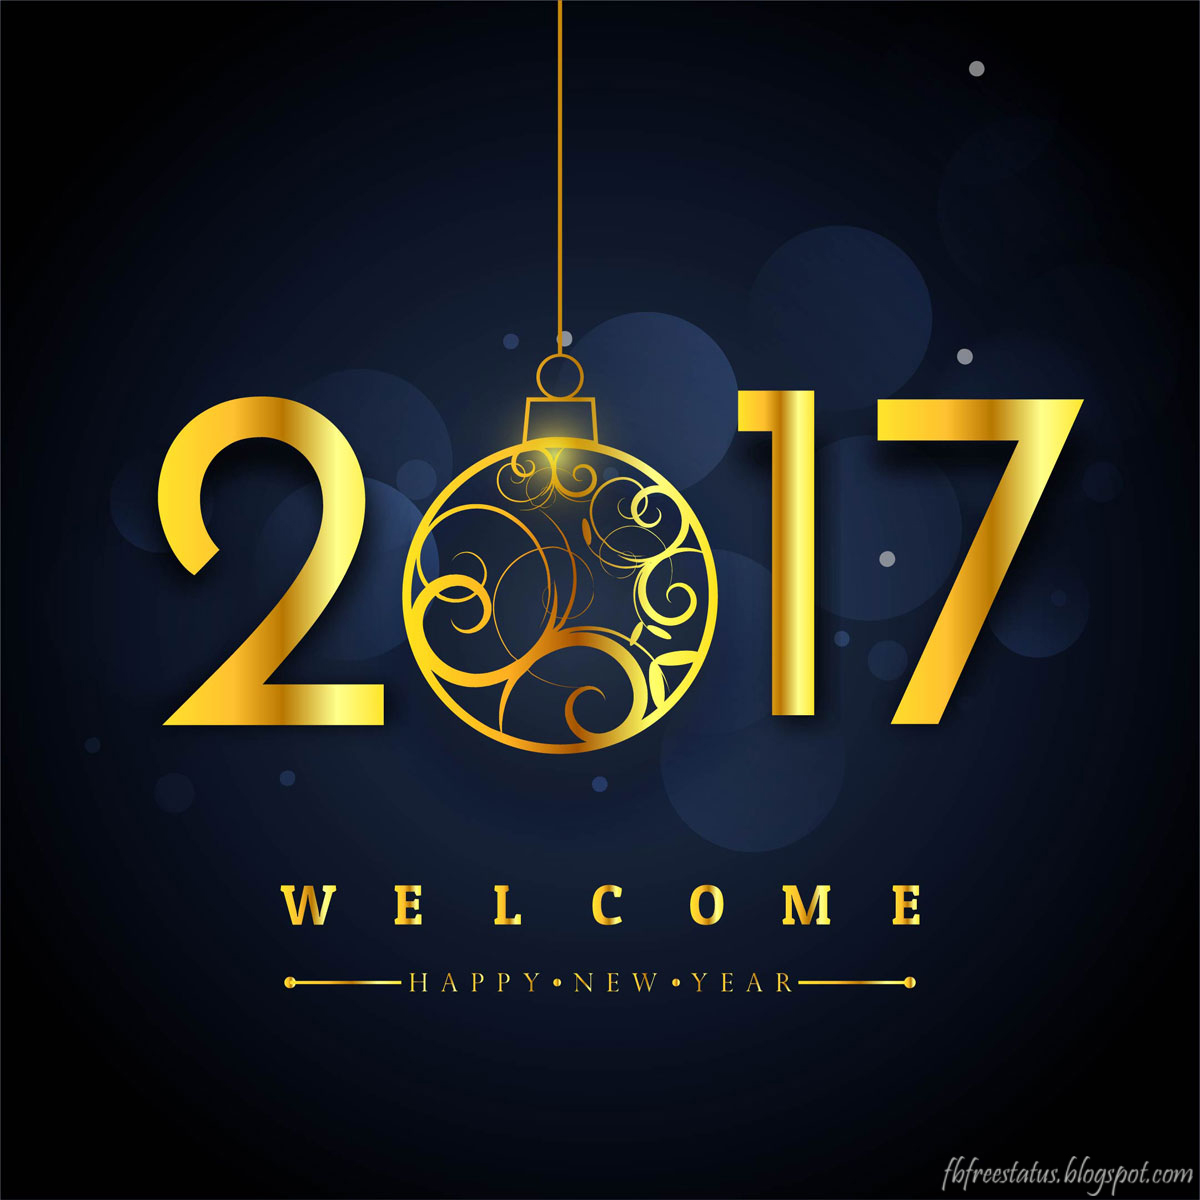 Best New Year Images 2017,